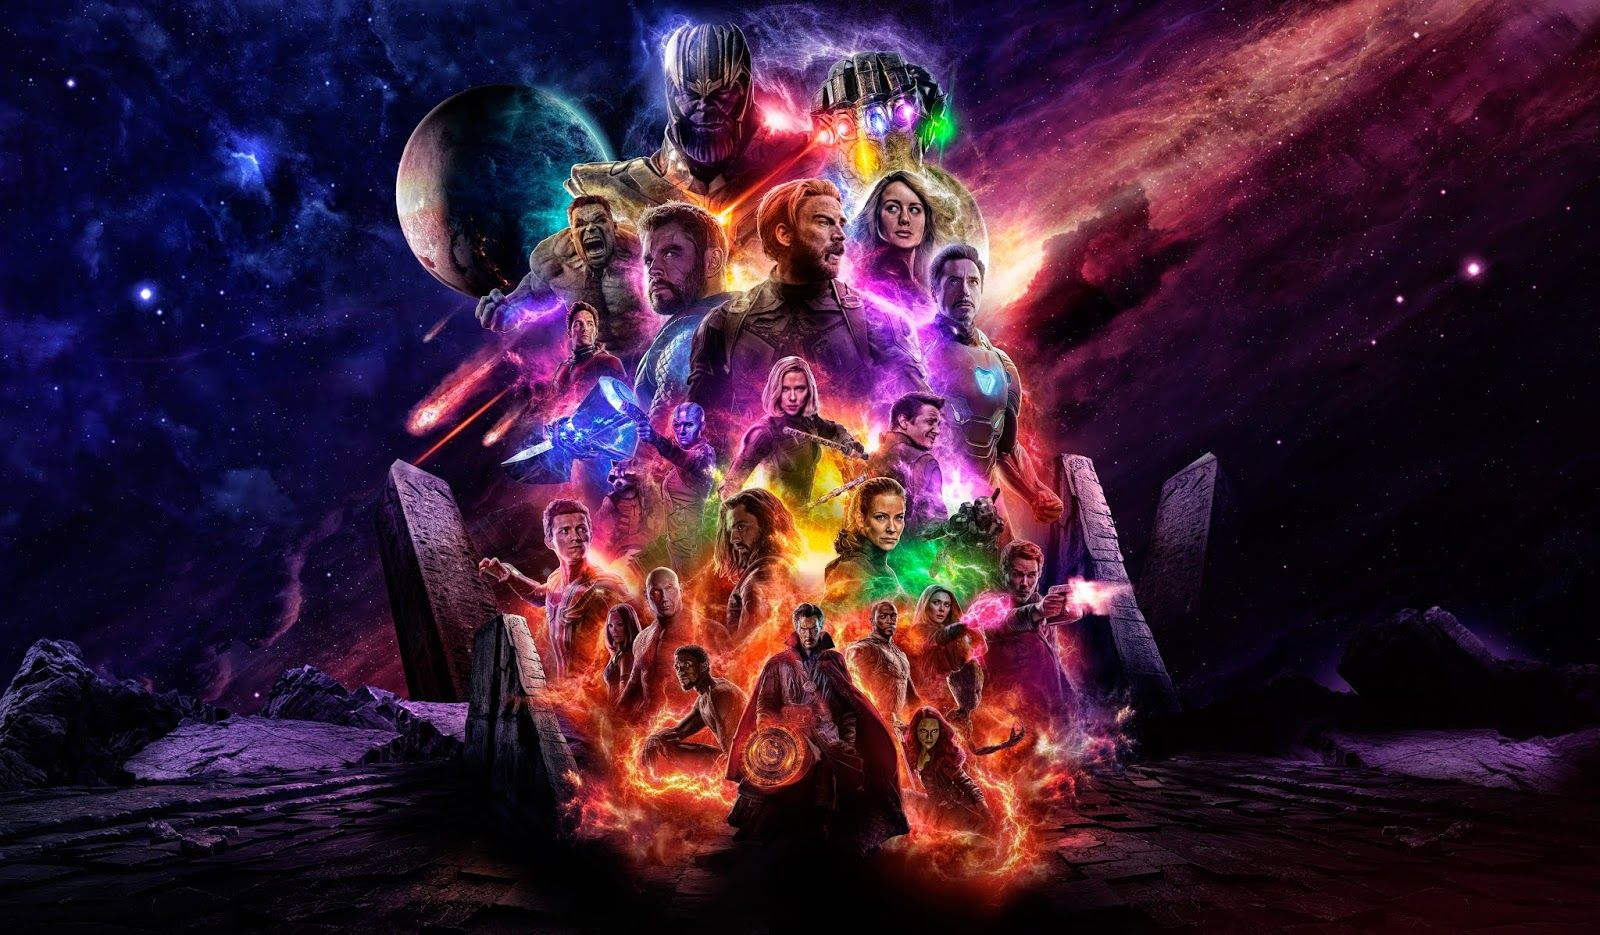 Marvel All Movies In Order Tamil Dubbed Download Playtamildub Iron Man 1 Tamil Dubbed Hd Iron Man 1 Tamil Avengers Marvel Movies Marvel Cinematic